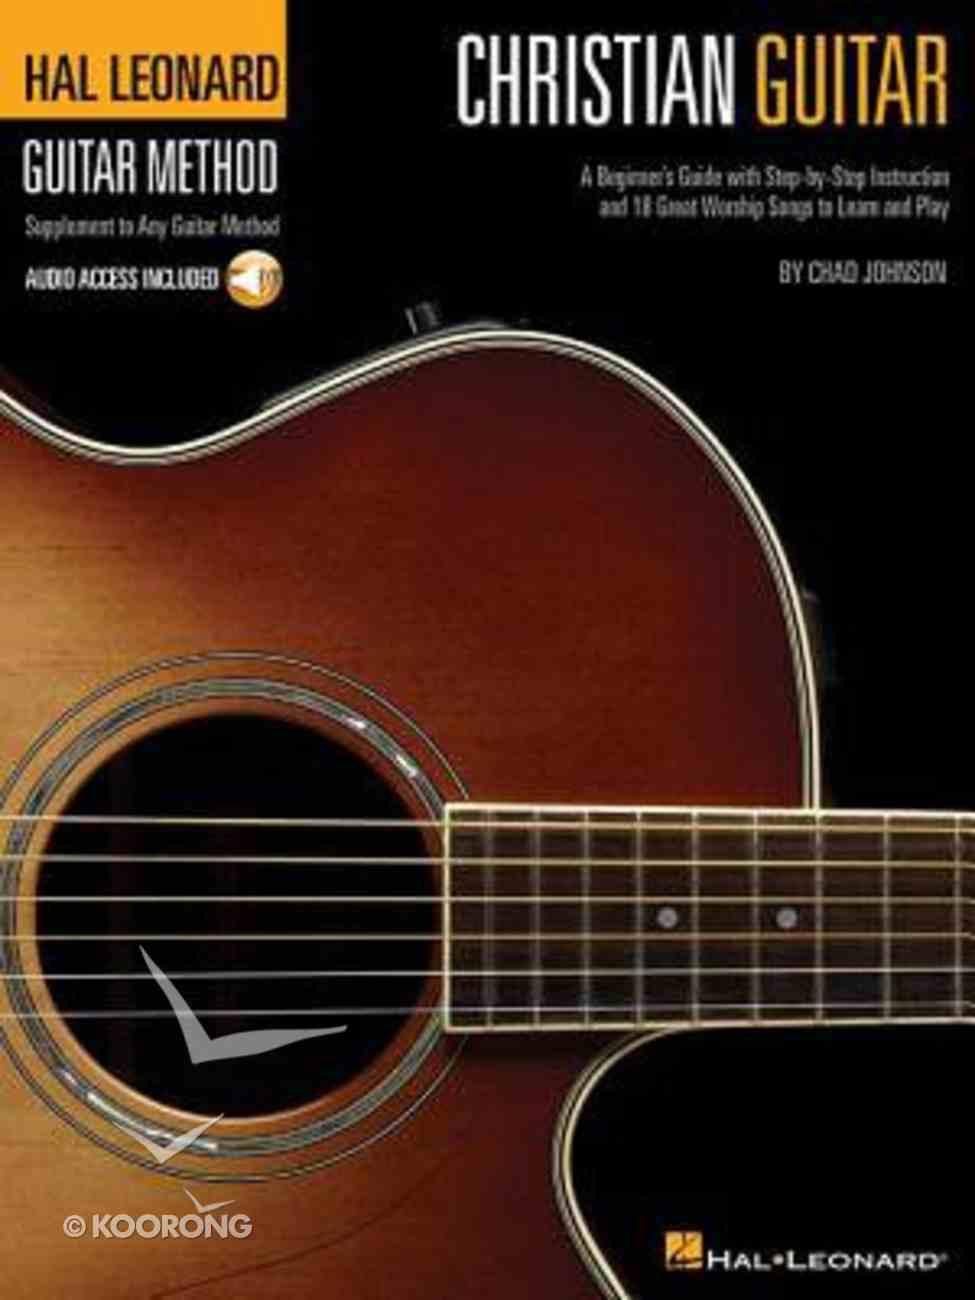 Christian Guitar Method: A Beginner's Guide (Music Book With Cdrom) Paperback